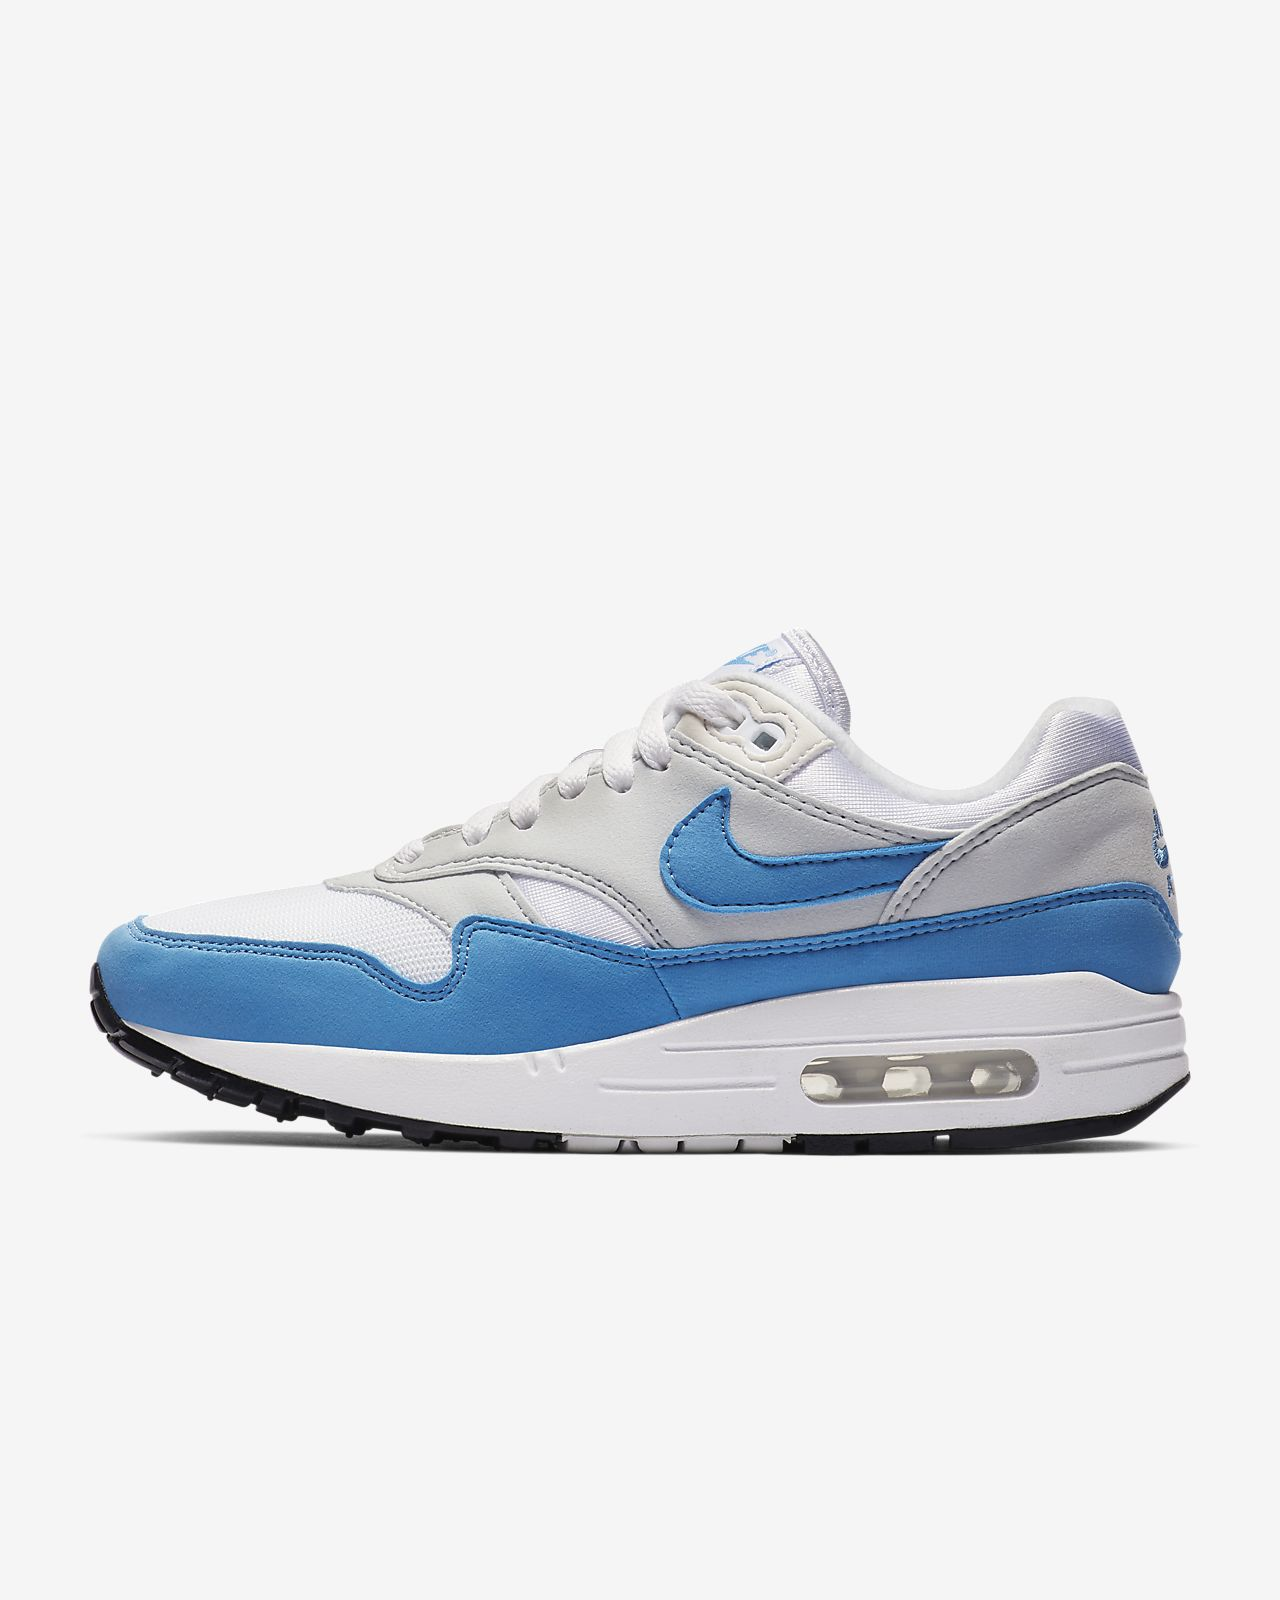 965920946f24 Nike Air Max 1 Essential Women s Shoe. Nike.com AU